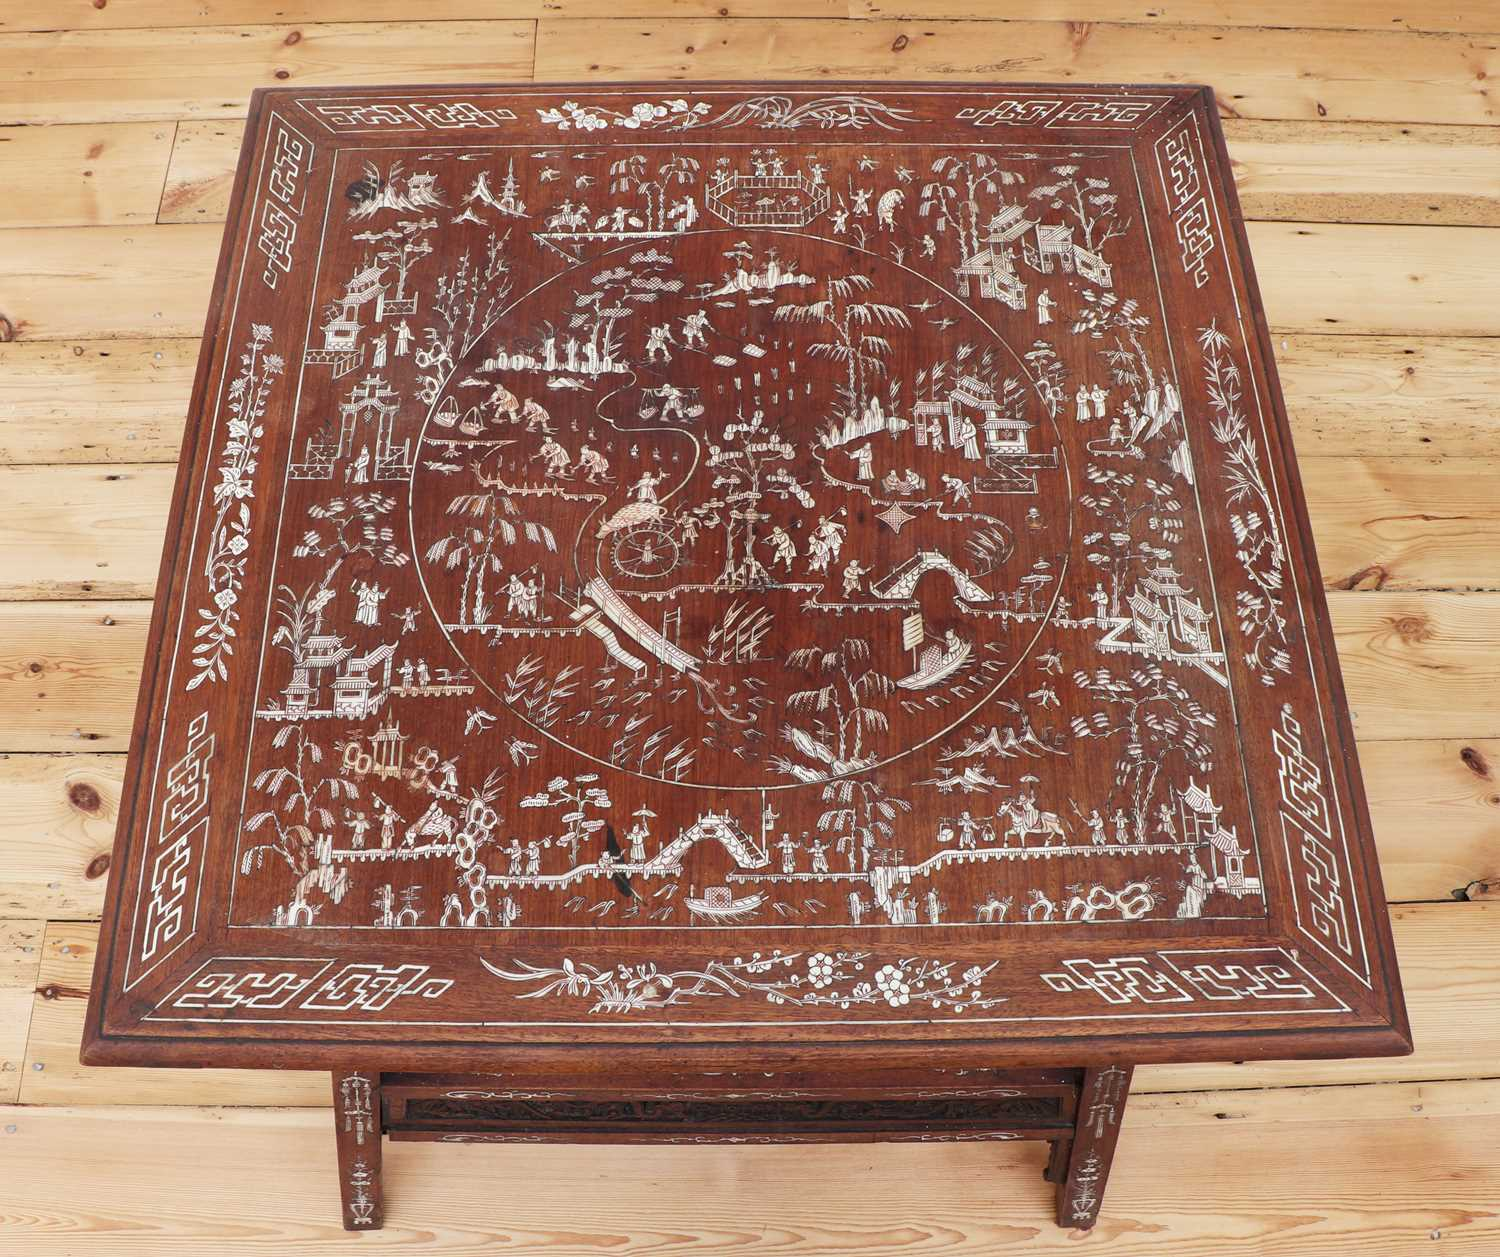 A Chinese hardwood and ivory inlaid occasional table, - Image 7 of 10